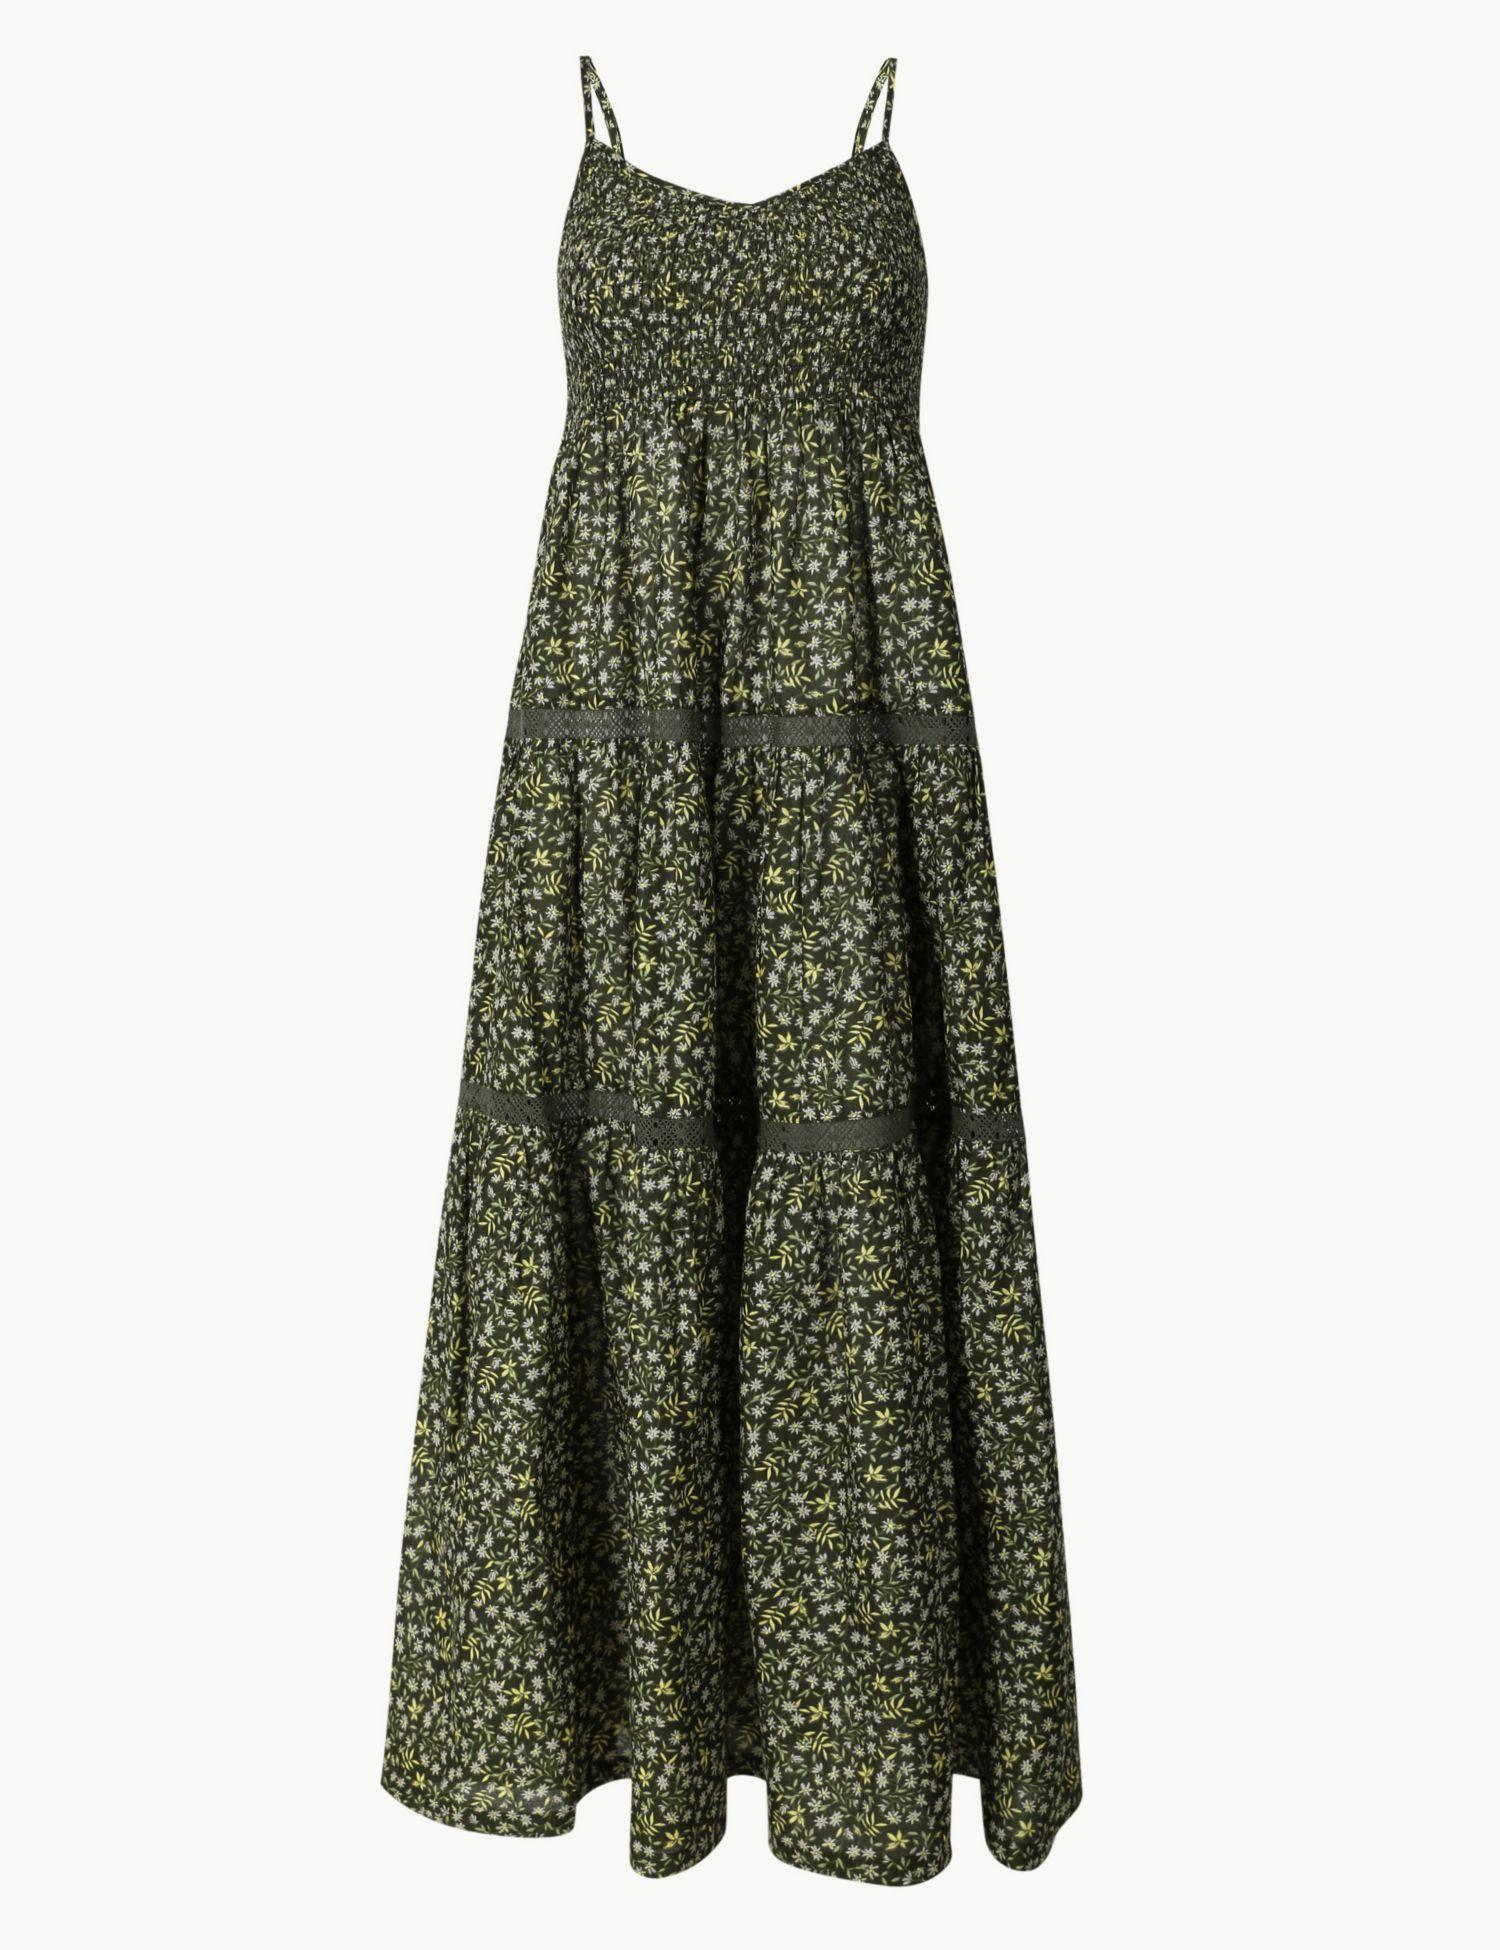 39ff62c724d6 Marks   Spencer. Women s Green Pure Cotton Floral Print Swing Midi Dress